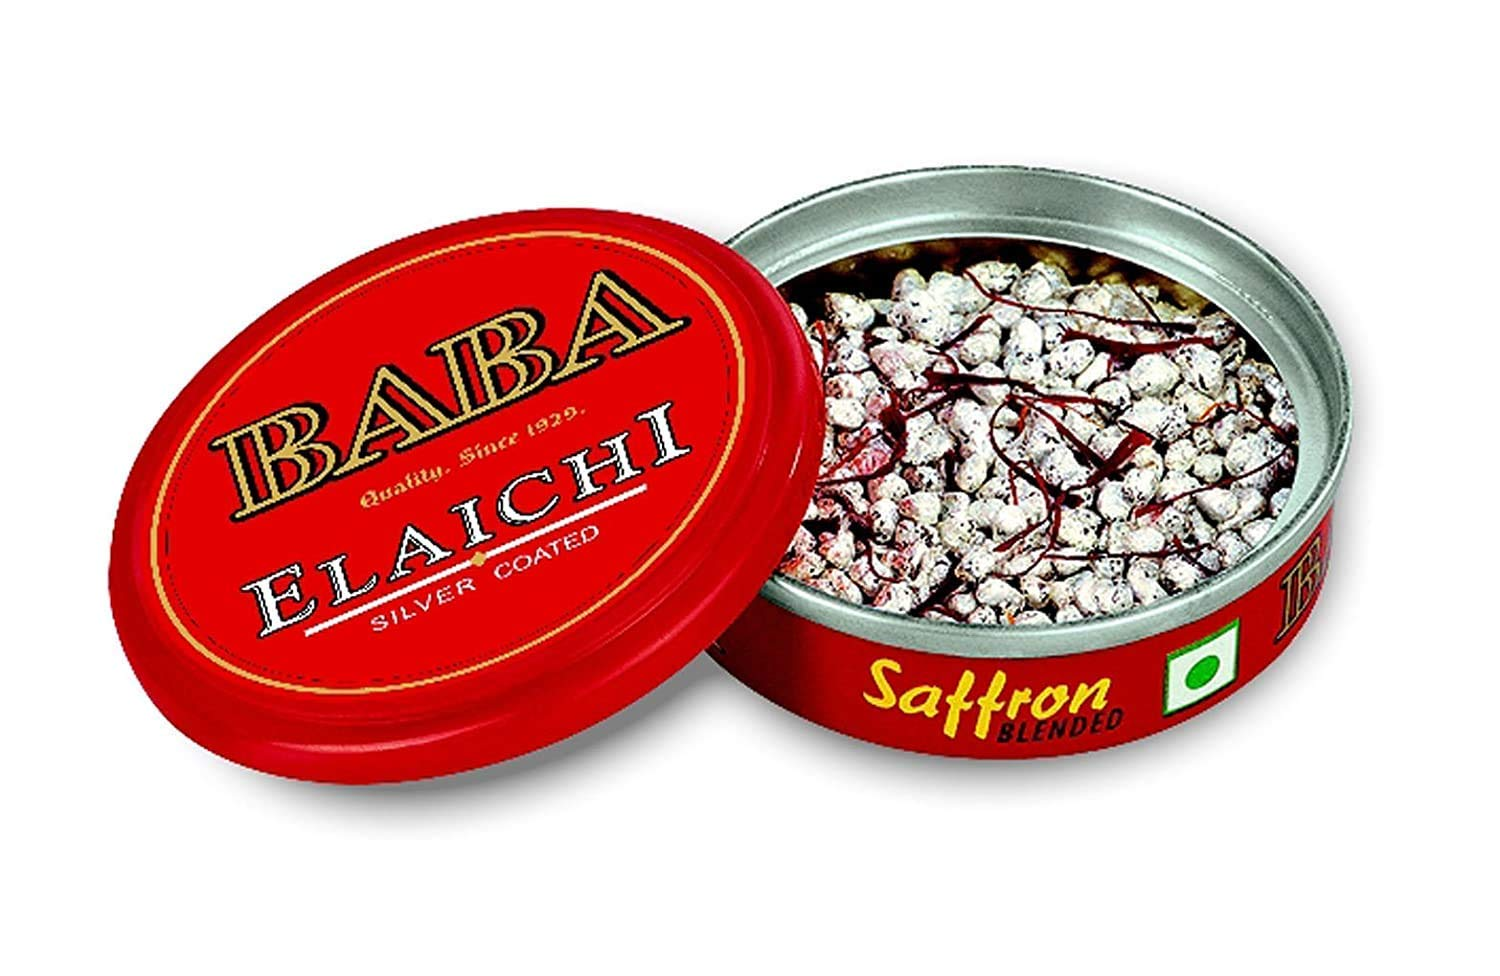 Baba Elaichi Silver Coated All stores are sold Saffron Inexpensive Mouth Seeds Cardamom Blended